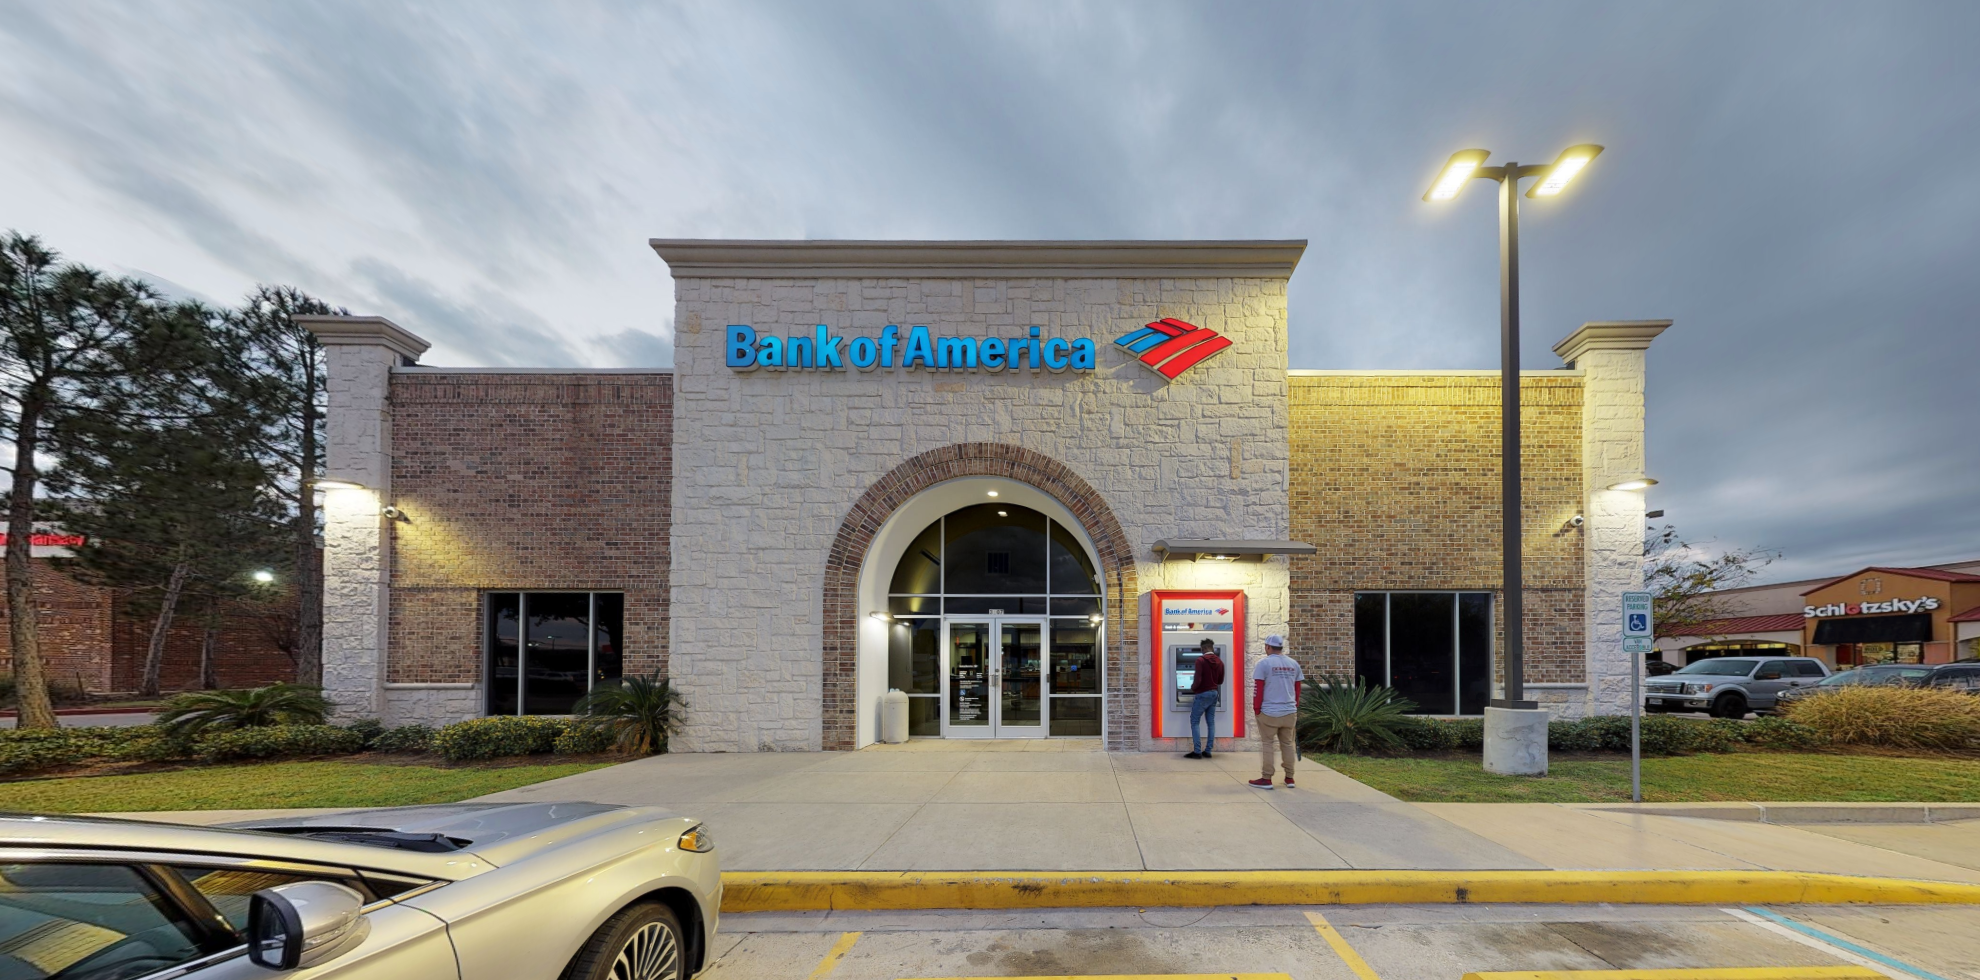 Bank of America financial center with drive-thru ATM | 3107 N Fry Rd, Katy, TX 77449